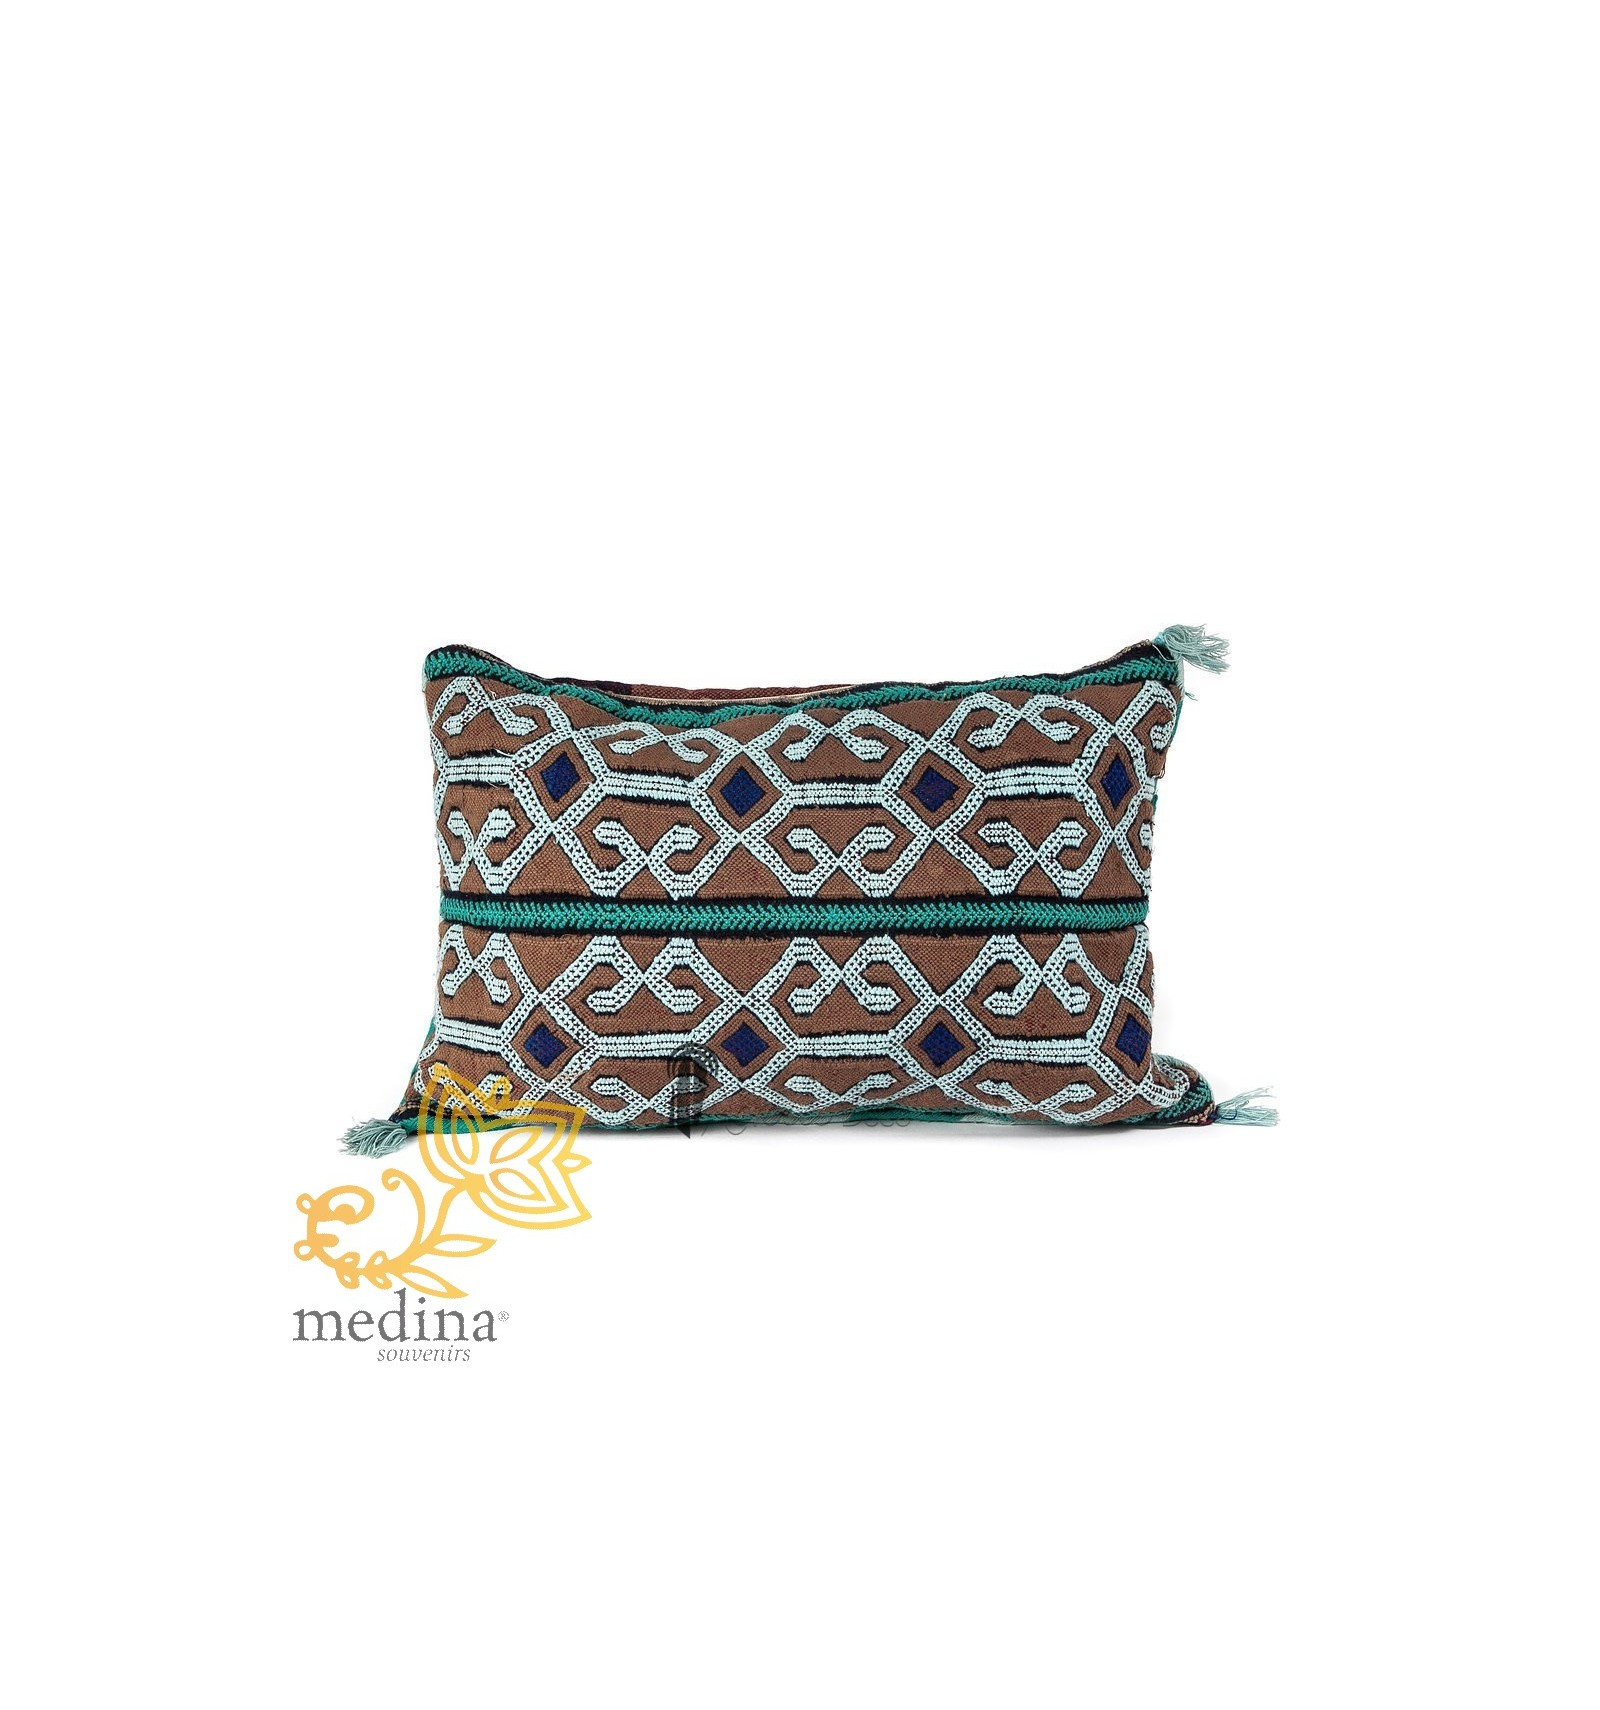 coussin vintage couleur bleue et marron tiss et brod la main pouf marocain. Black Bedroom Furniture Sets. Home Design Ideas